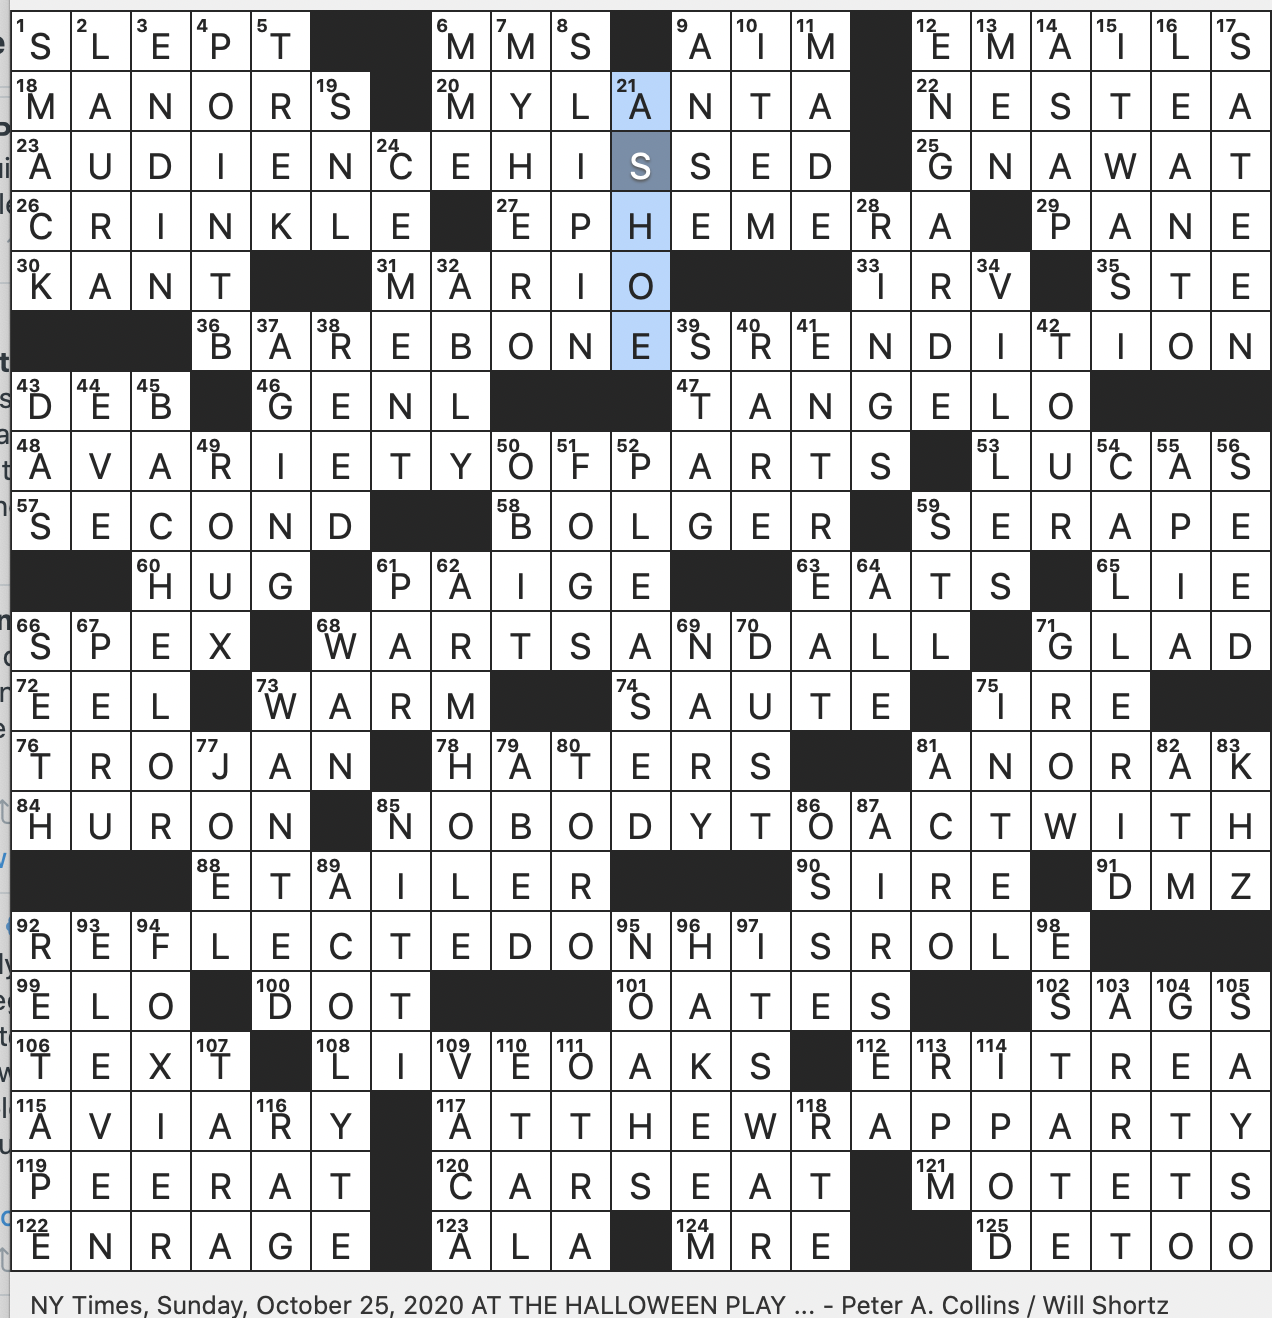 Rex Parker Does The Nyt Crossword Puzzle Scarecrow Portrayer Sun 10 25 20 Citrus Fruit With Portmanteau Name No Go Area In Brief Indiana City That S 100 Miles West Of Lima Ohio Capone Contemporary